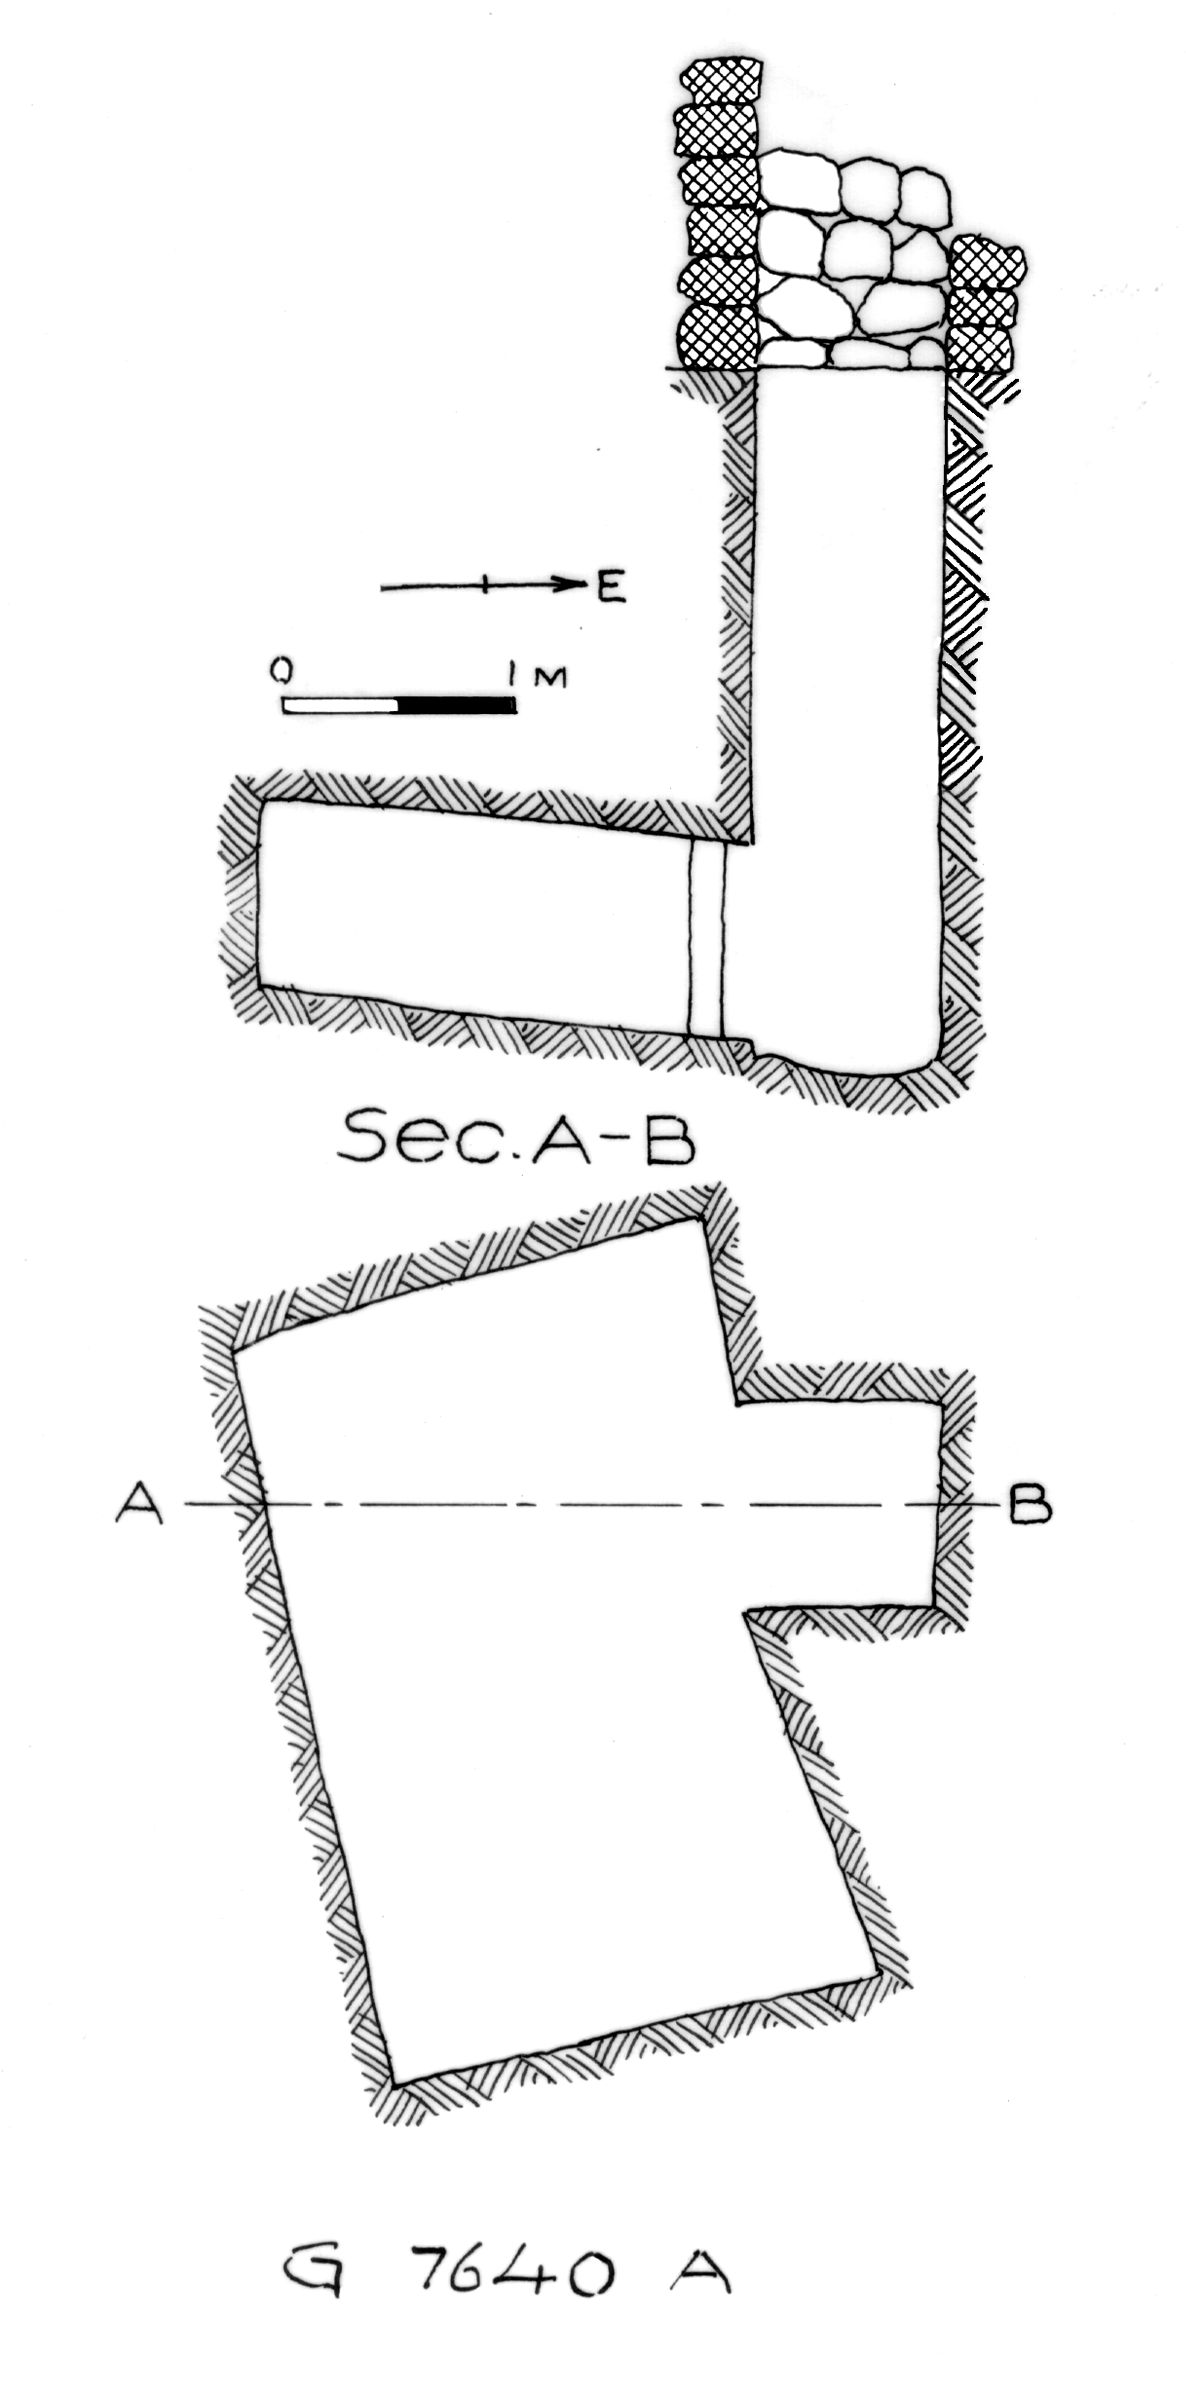 Maps and plans: G 7640, Shaft A